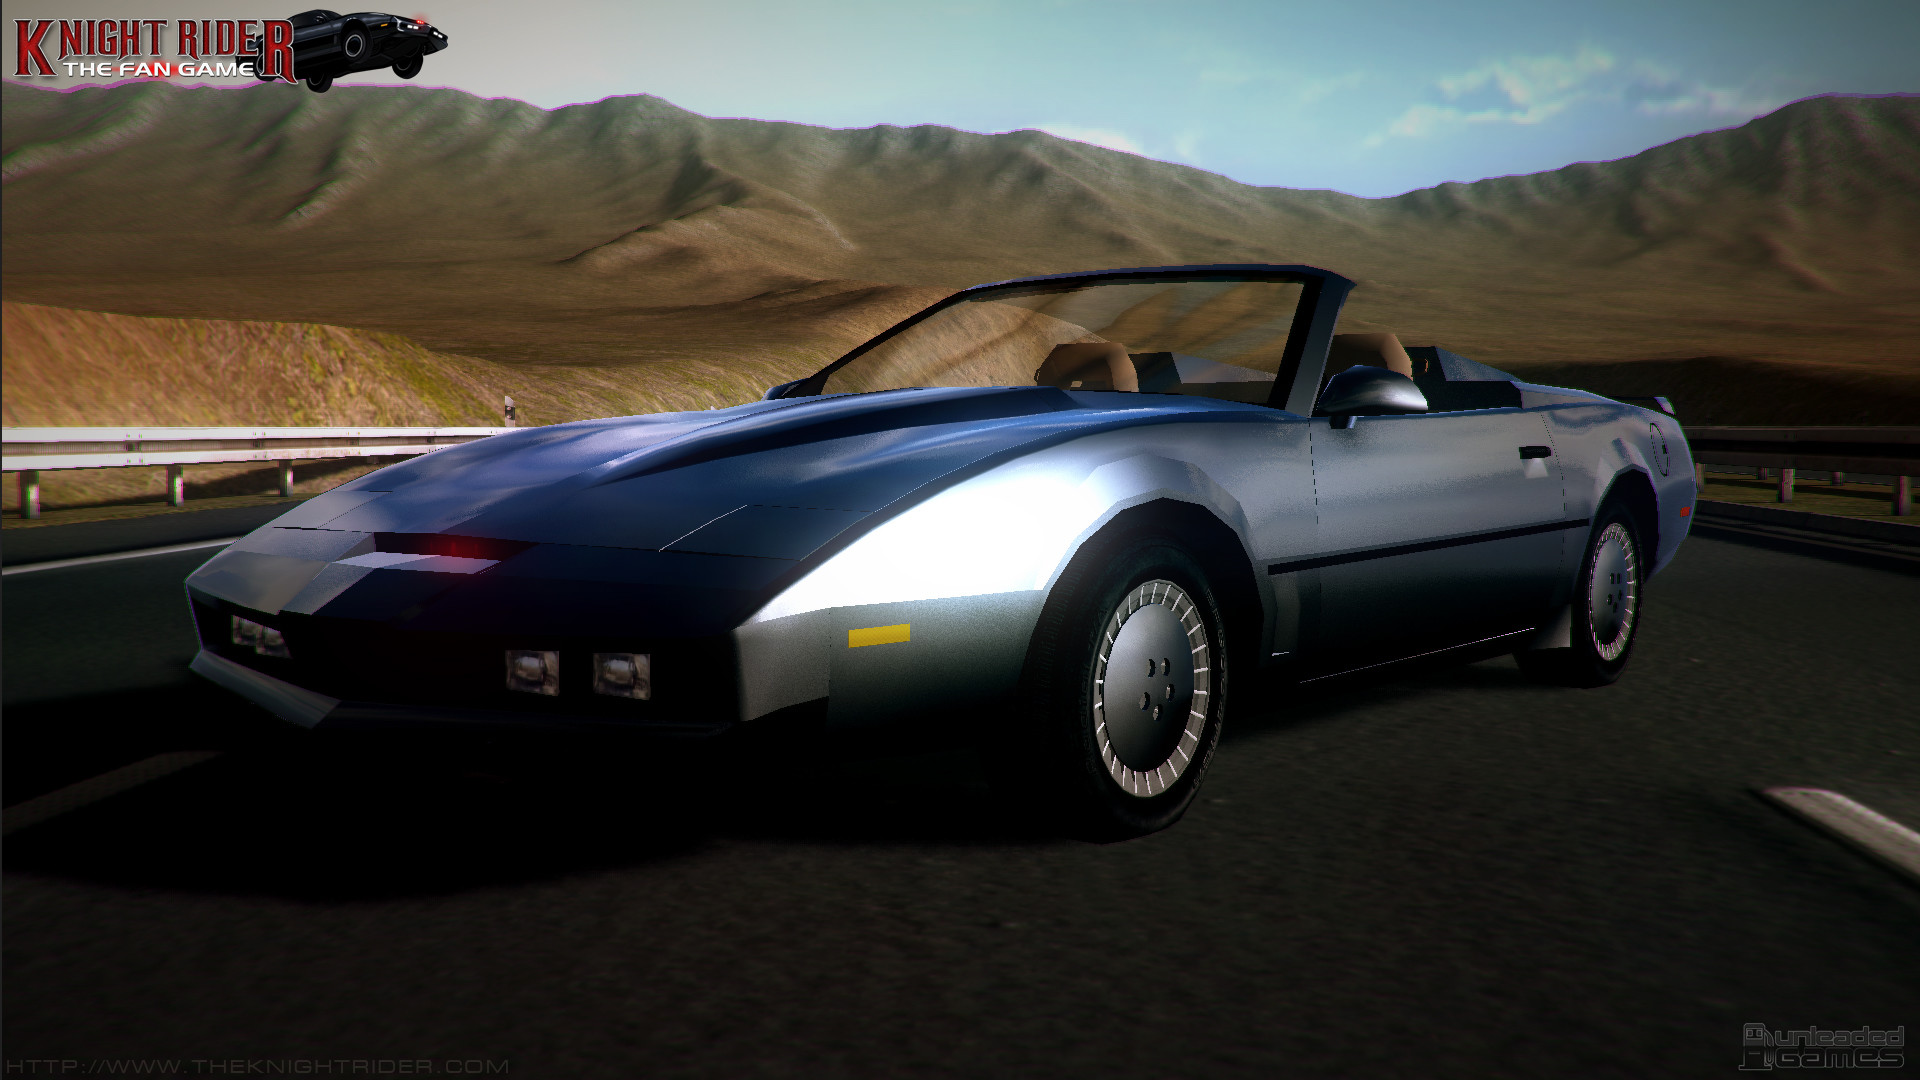 1920x1080 Related Pictures knight rider wallpapers knight rider kitt wallpaper